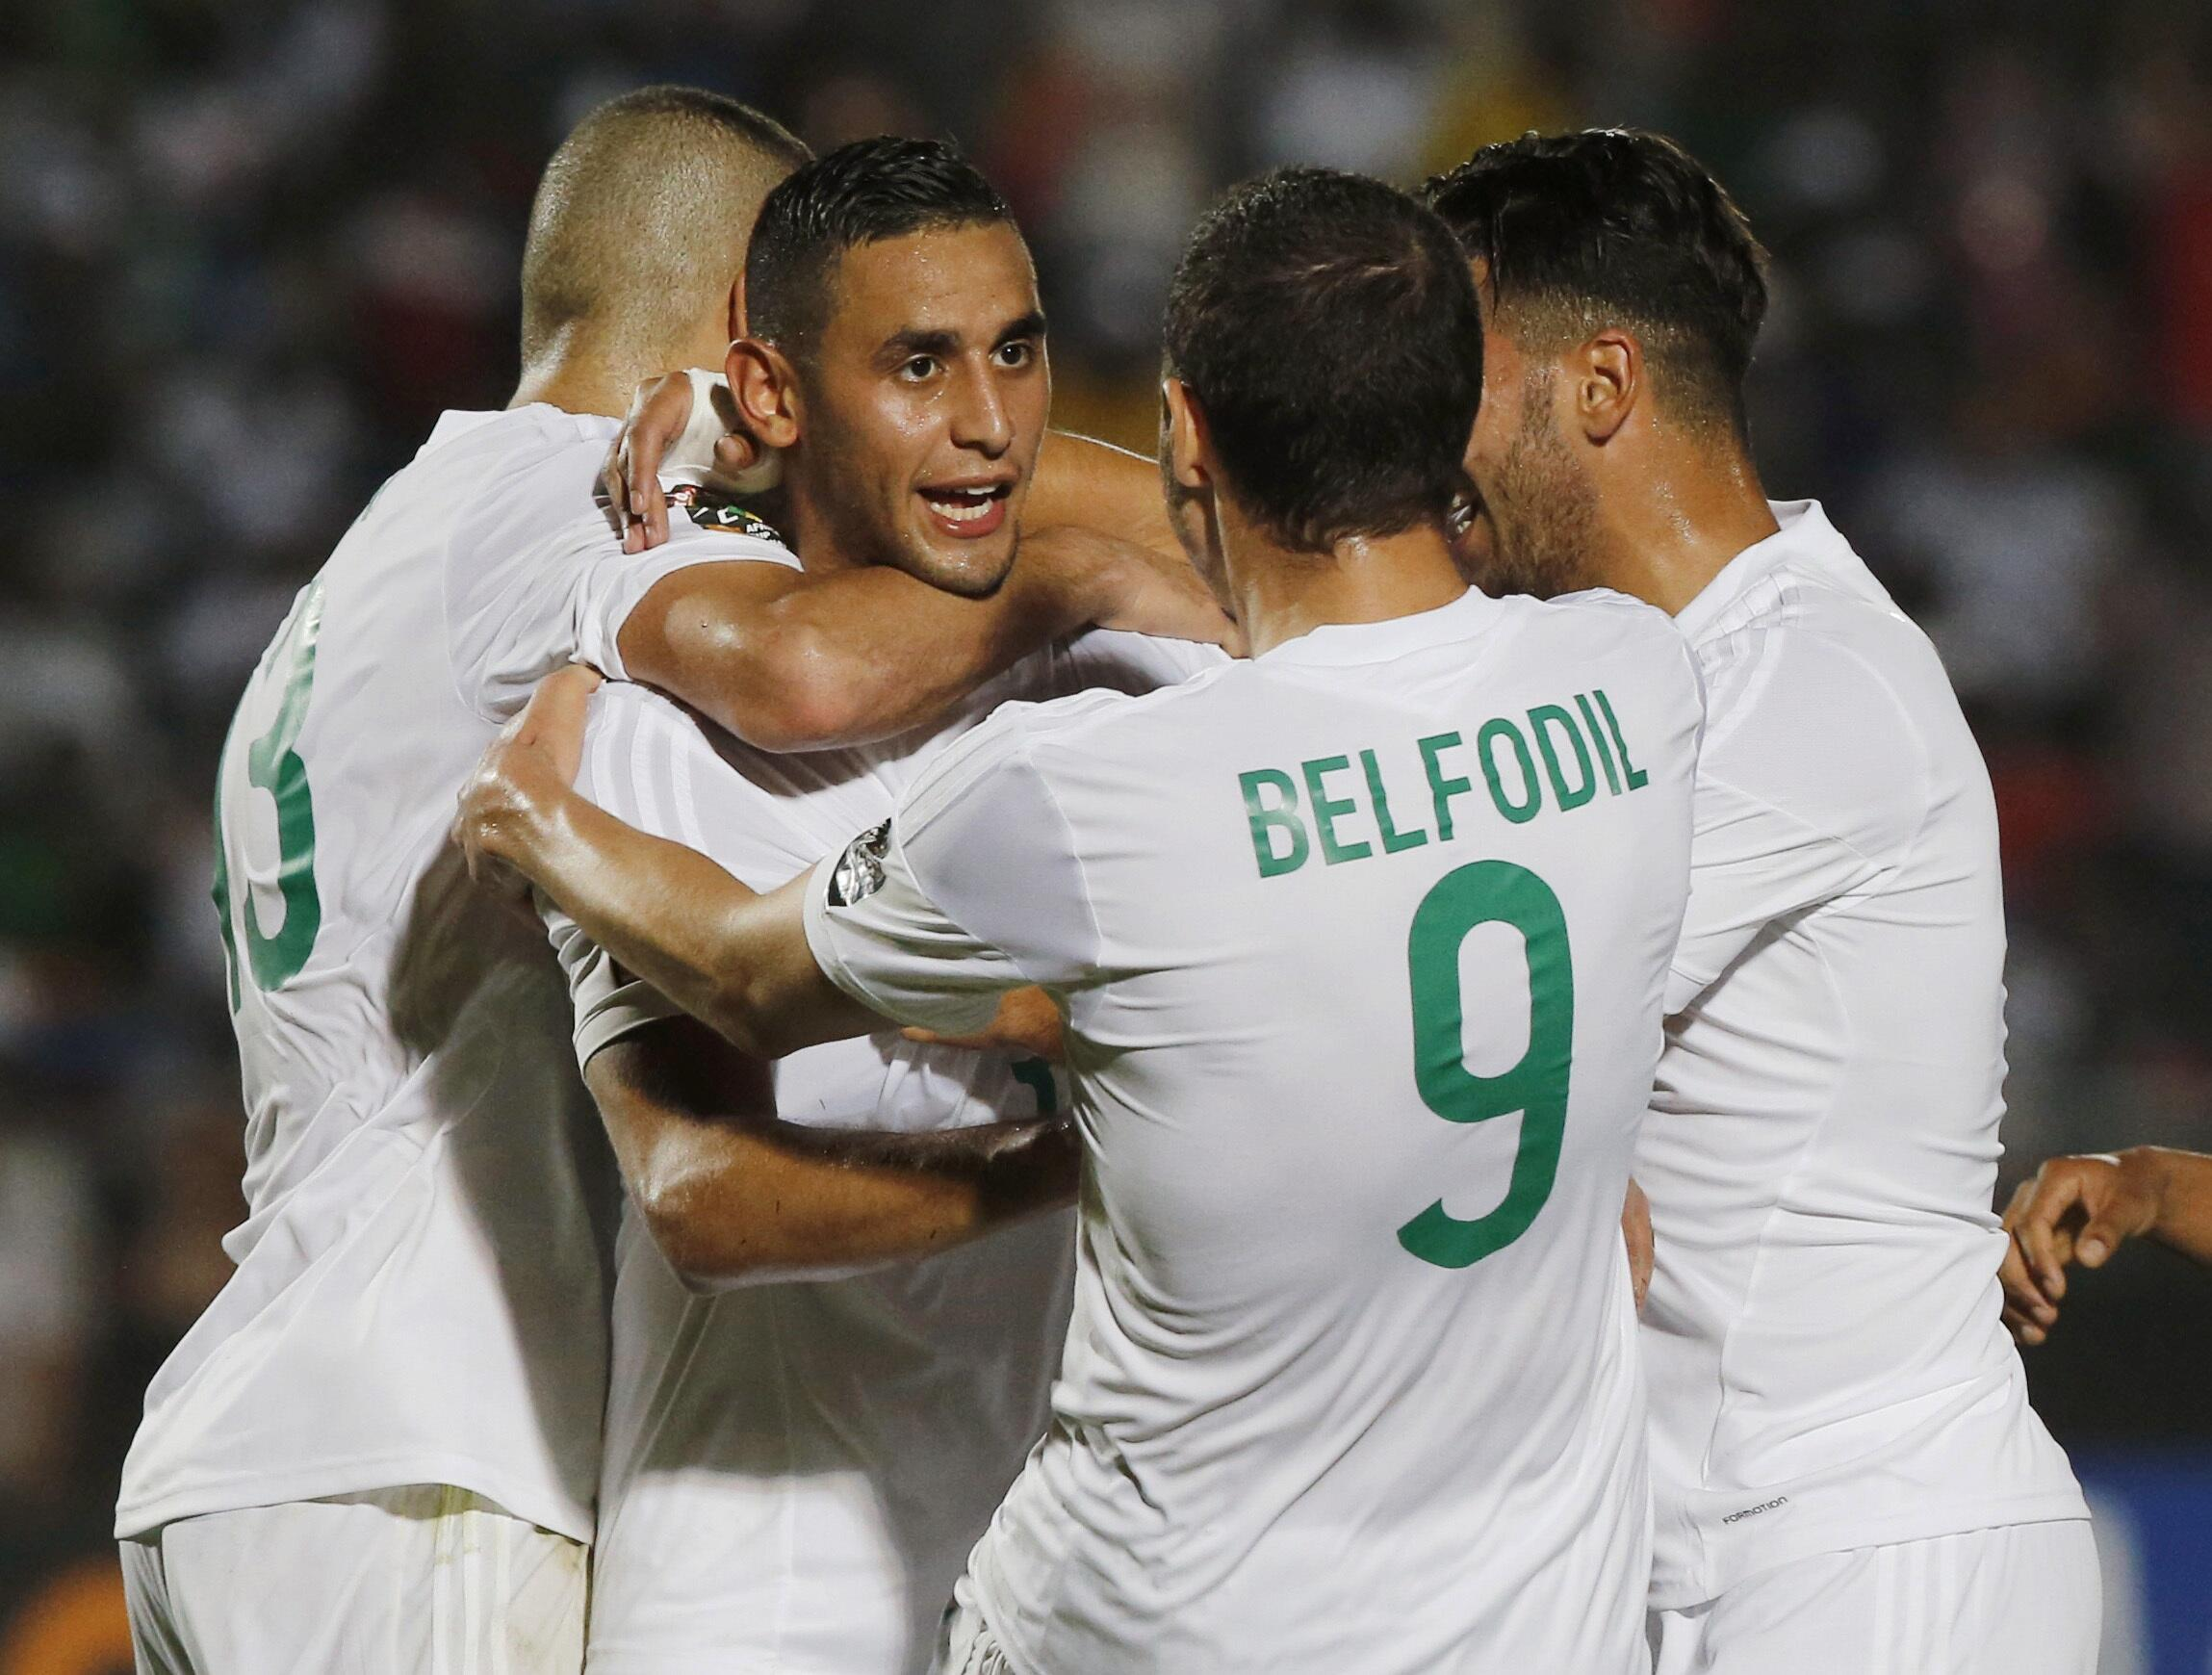 Algeria's Faouzi Ghoulam celebrates his goal during their match against South Africa on 19 January, 2015